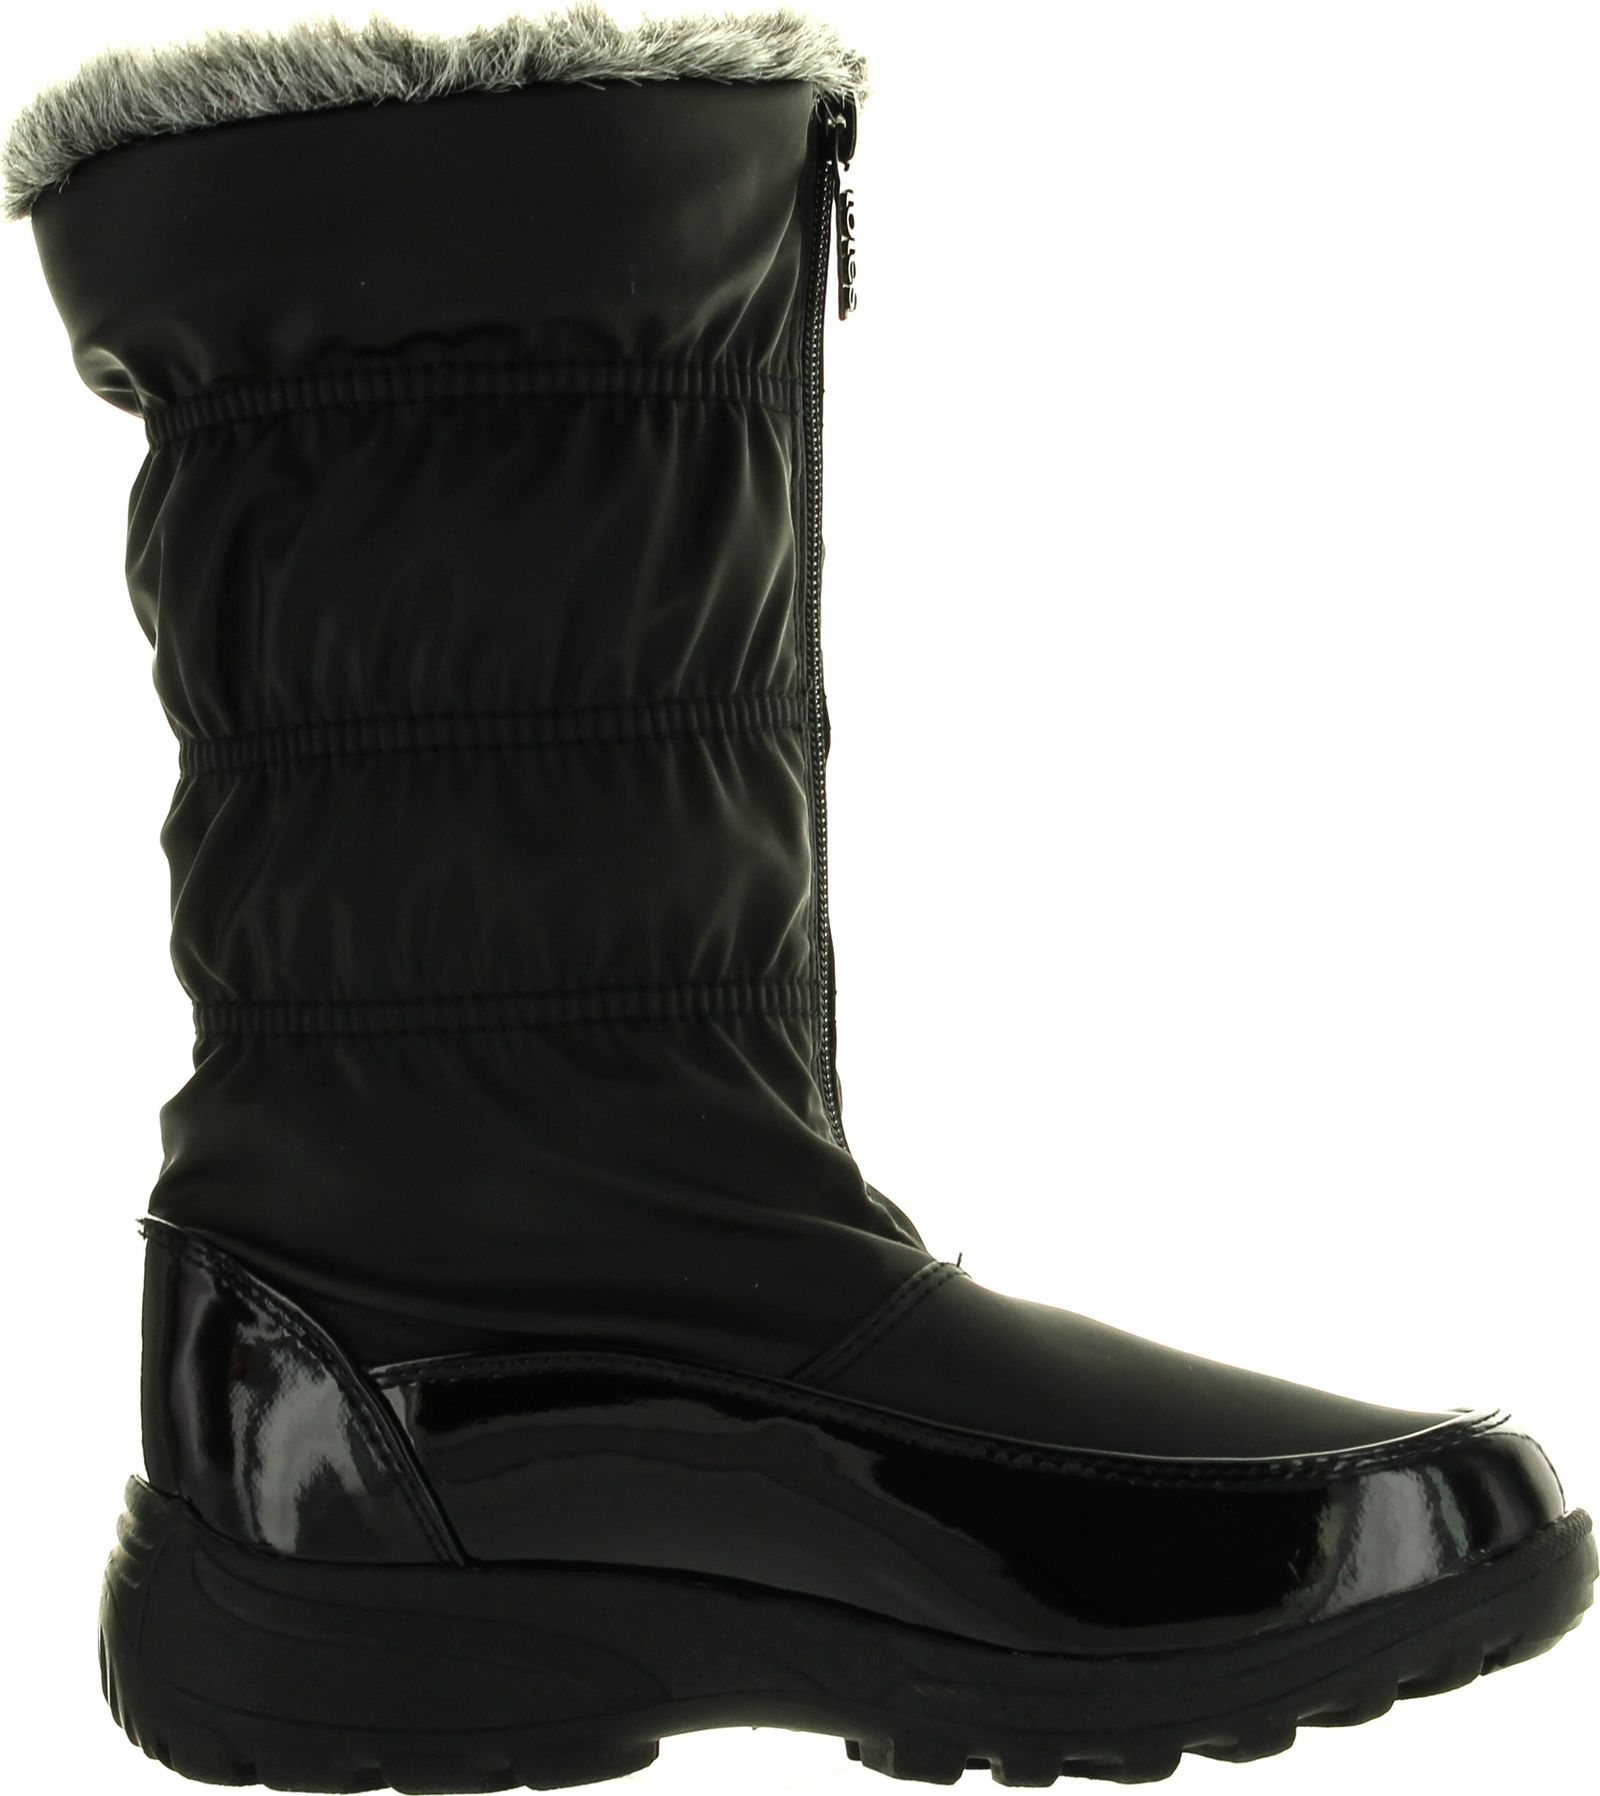 totes womens winter waterproof snow boots ebay